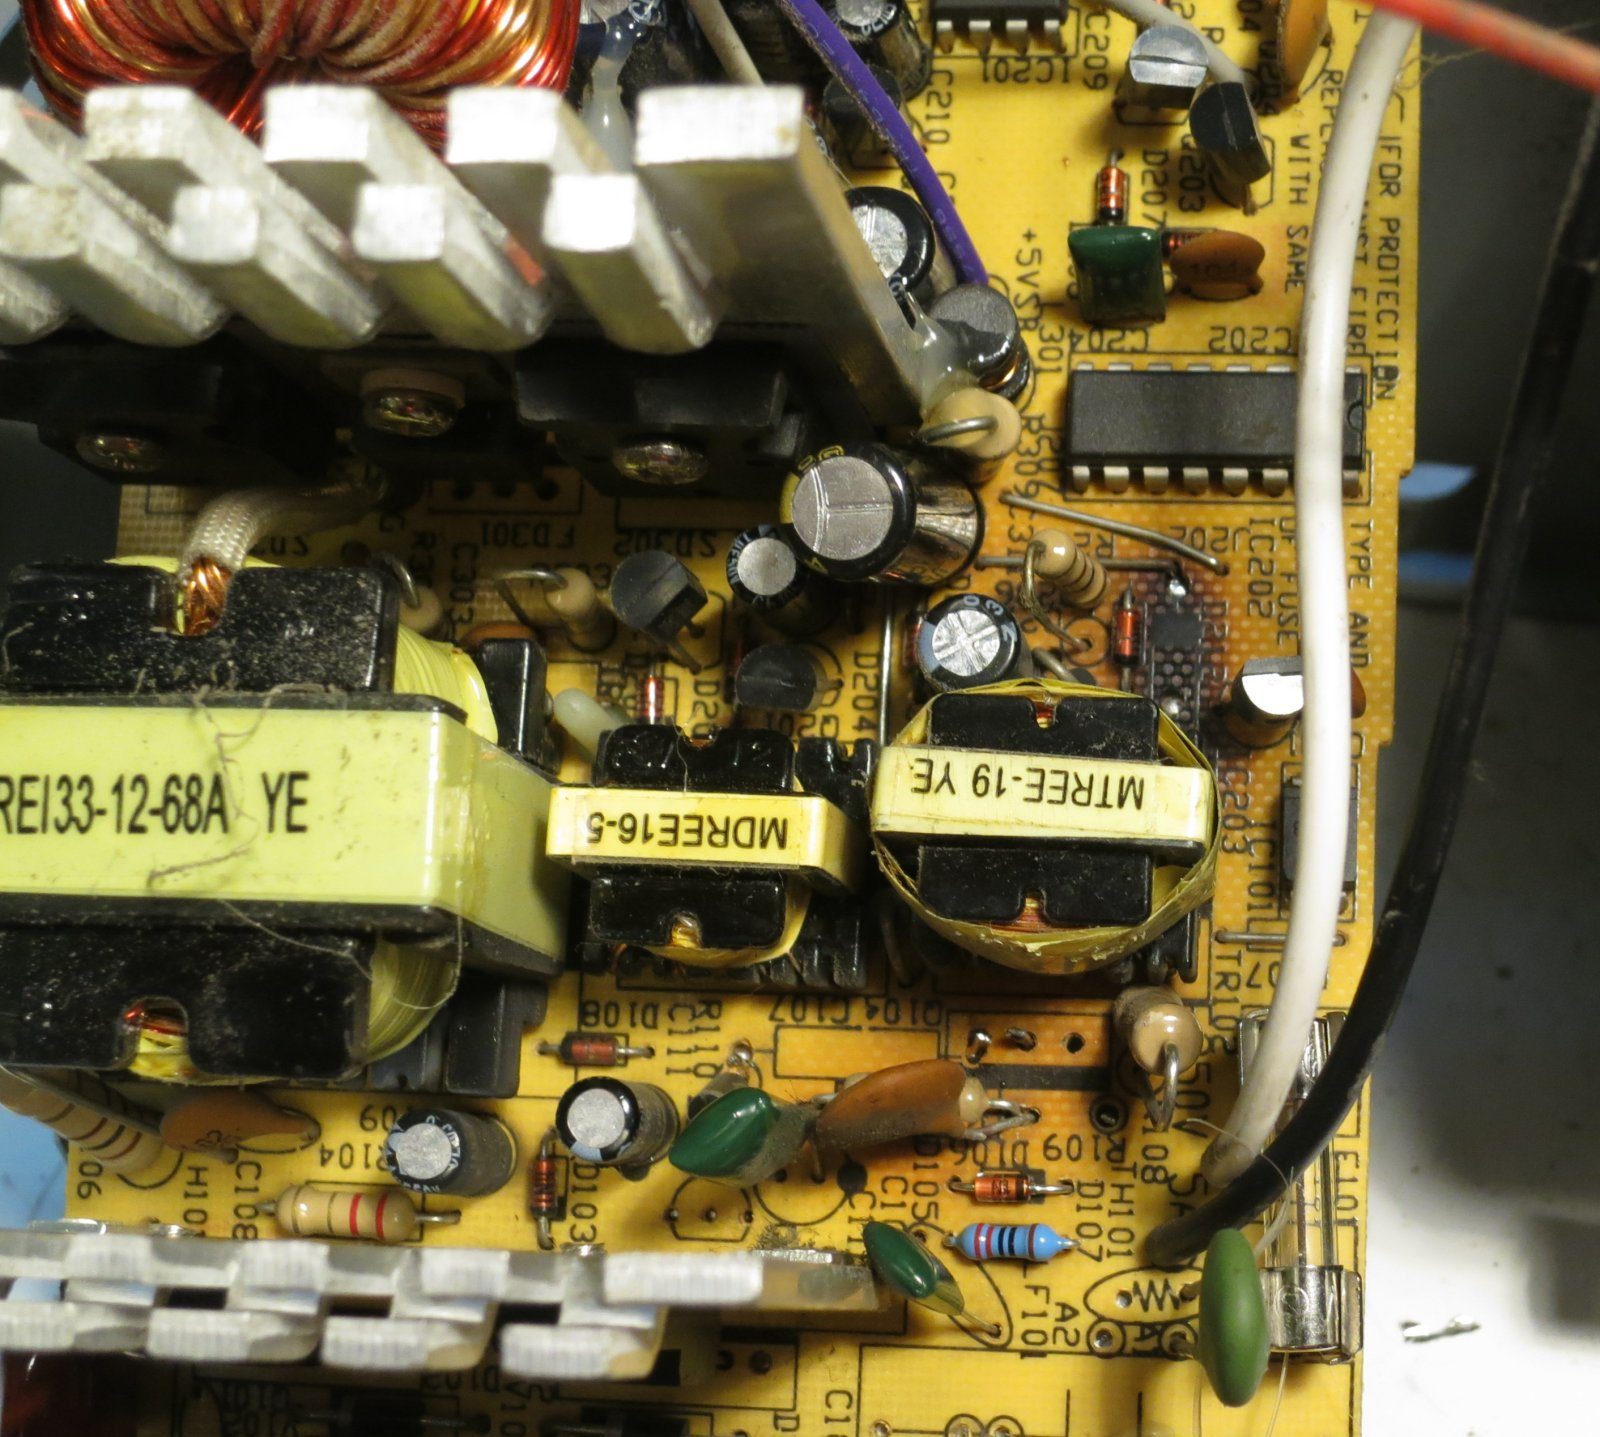 Repairing a PC power supply | martinjonestechnology